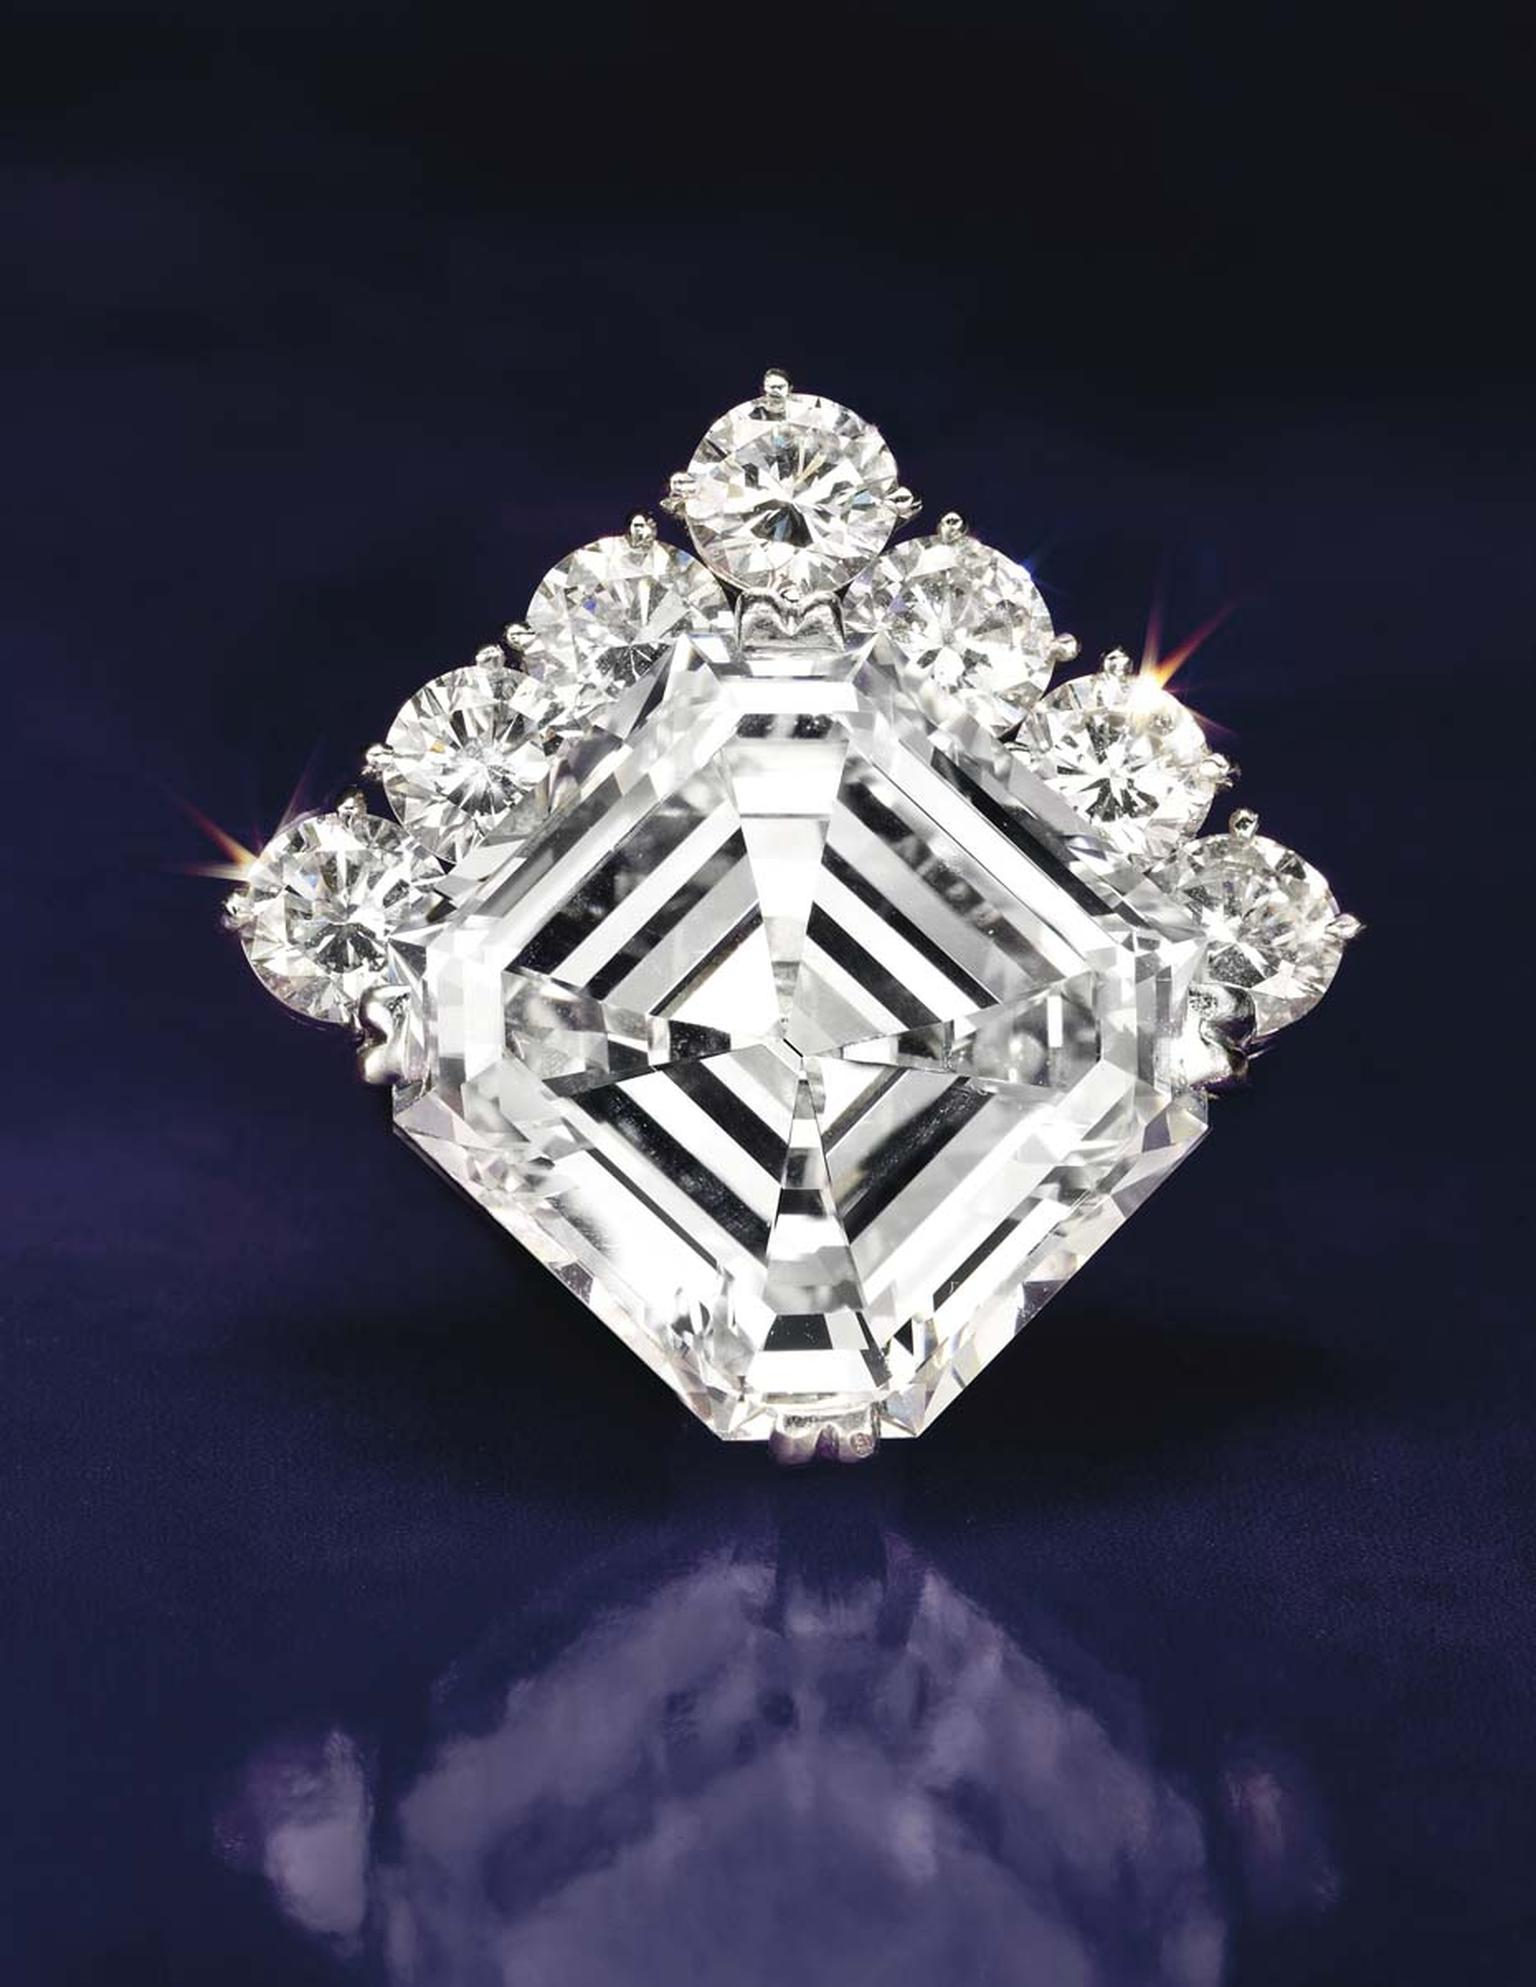 With a pre-sale estimate of US$700,000-900,000, this 18.38ct square-cut H color diamond pendant sold for US$941,000 during Christie's New York sale of Important Jewels.